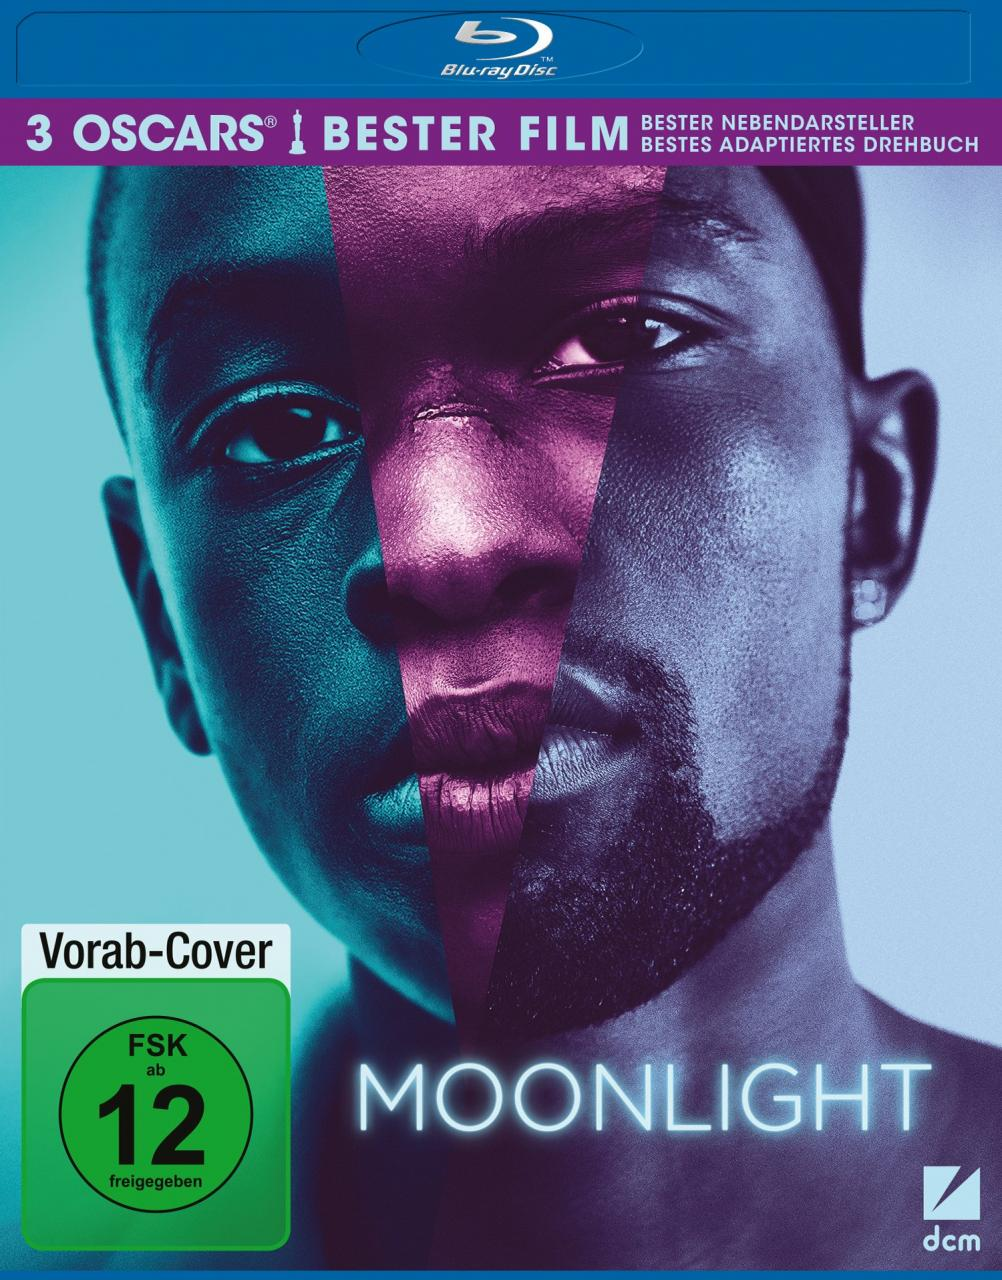 Moonlight.BDRip.MD.German.x264-PsO